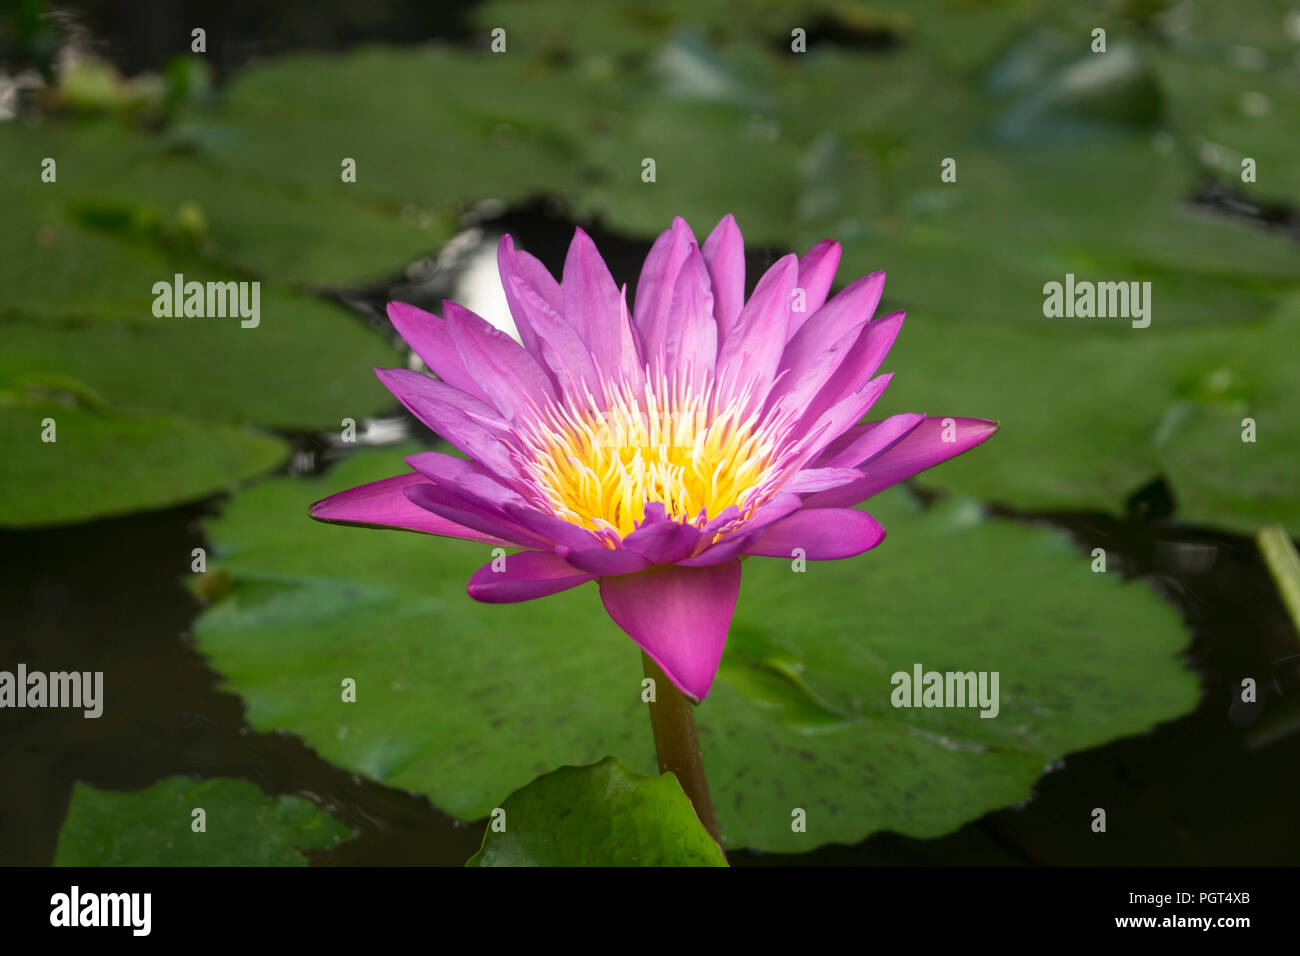 Horizontal Close Up Photo Of Blooming Pink Lotus Flower Blossom